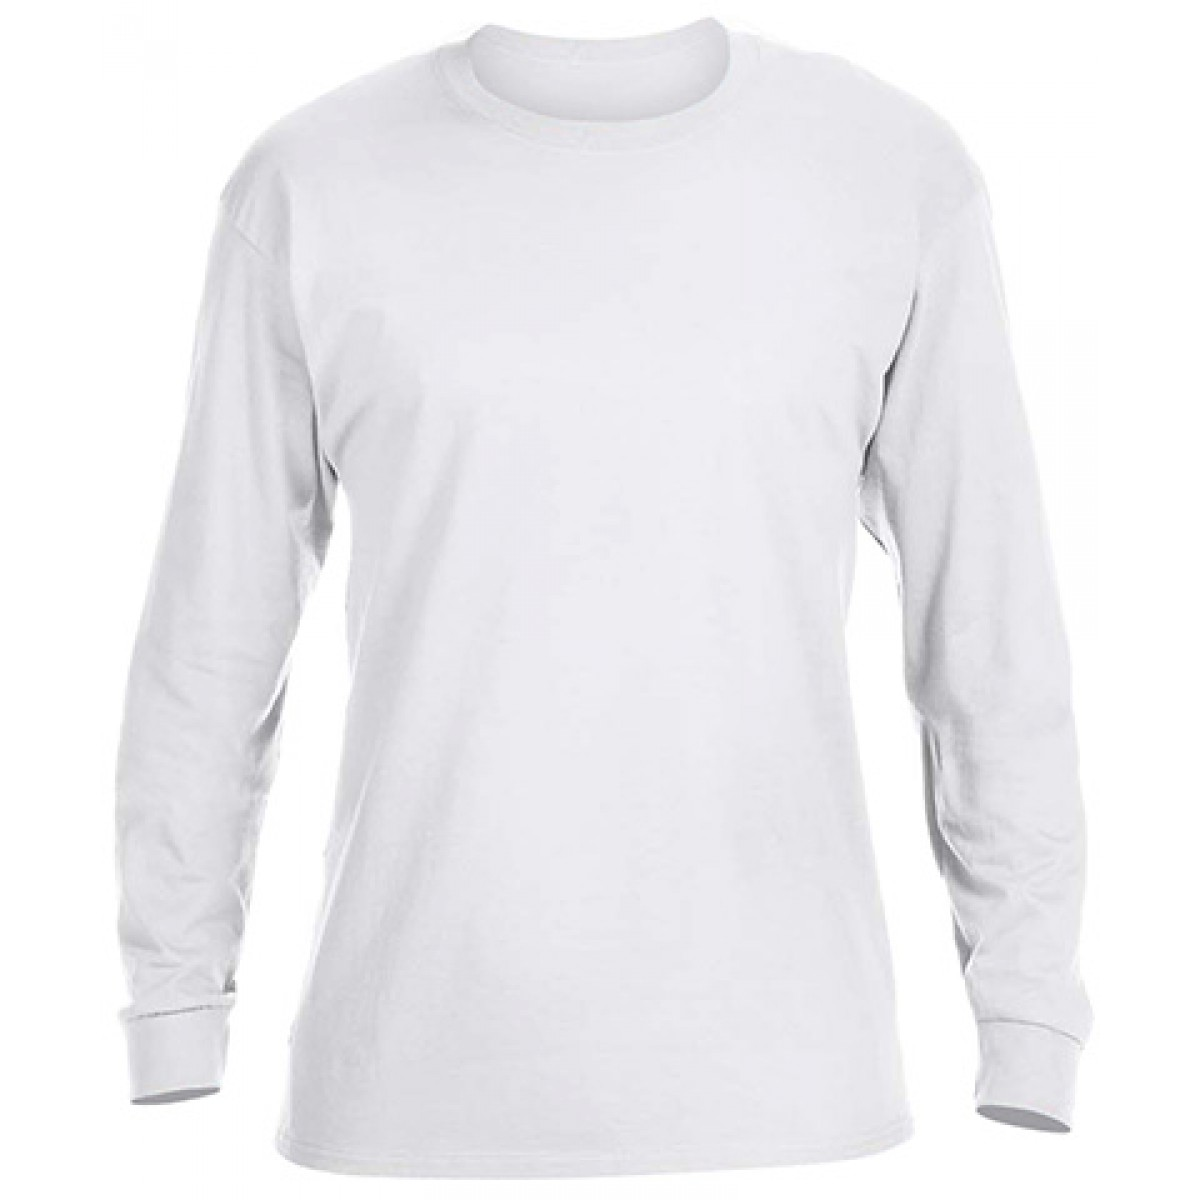 Basic Long Sleeve Crew Neck -White-YL